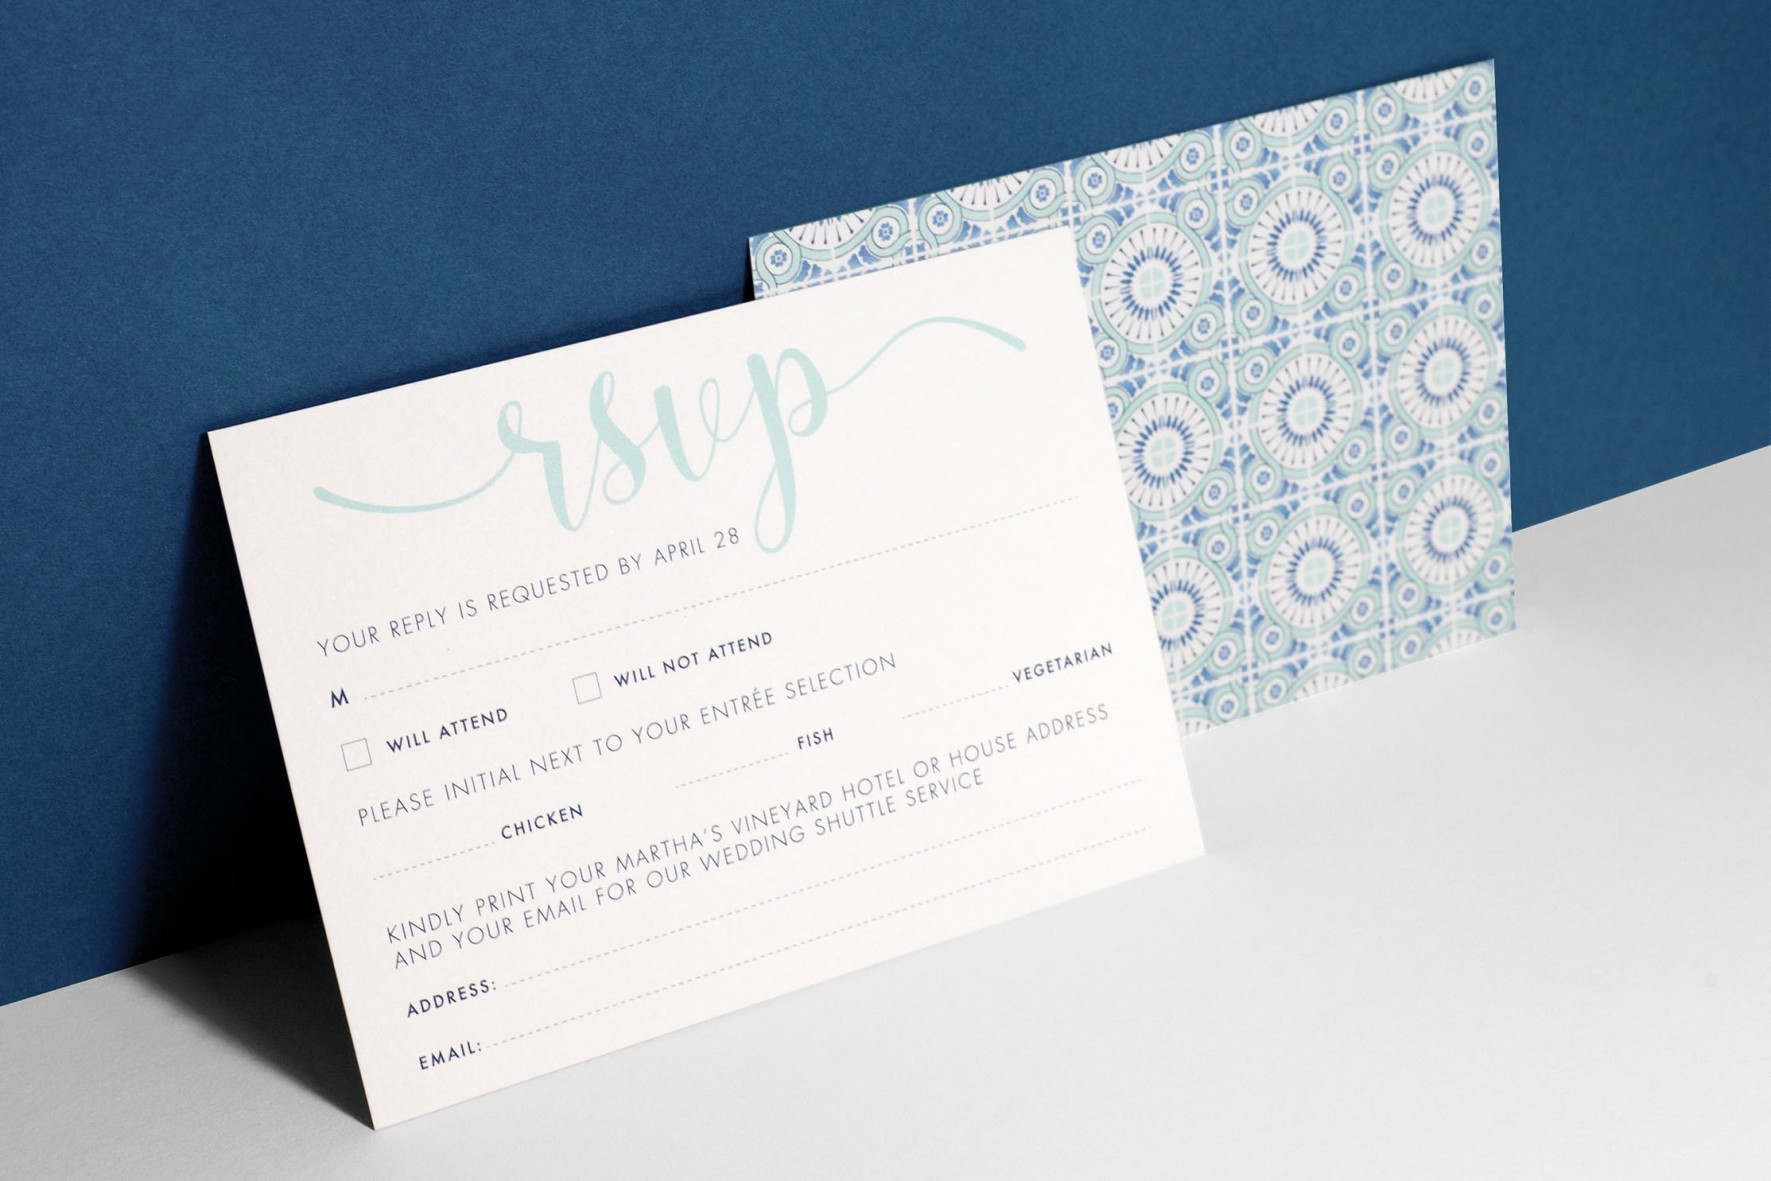 Portuguese blue tile watercolor wedding invitation RSVP by www.rosepaperscissors.com